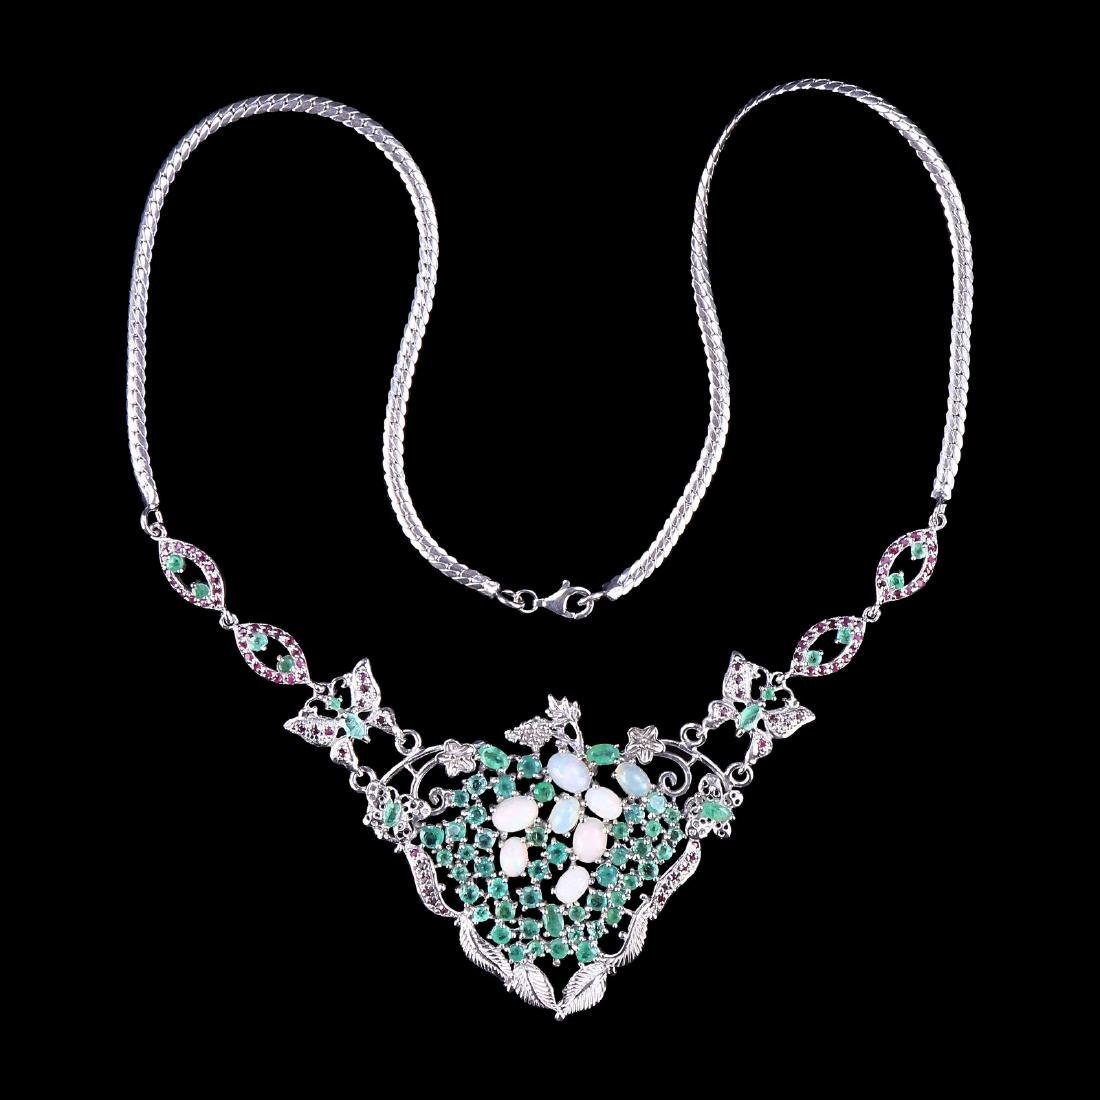 A NATURAL EMERALD, PEARL, & RUBY NECKLACE